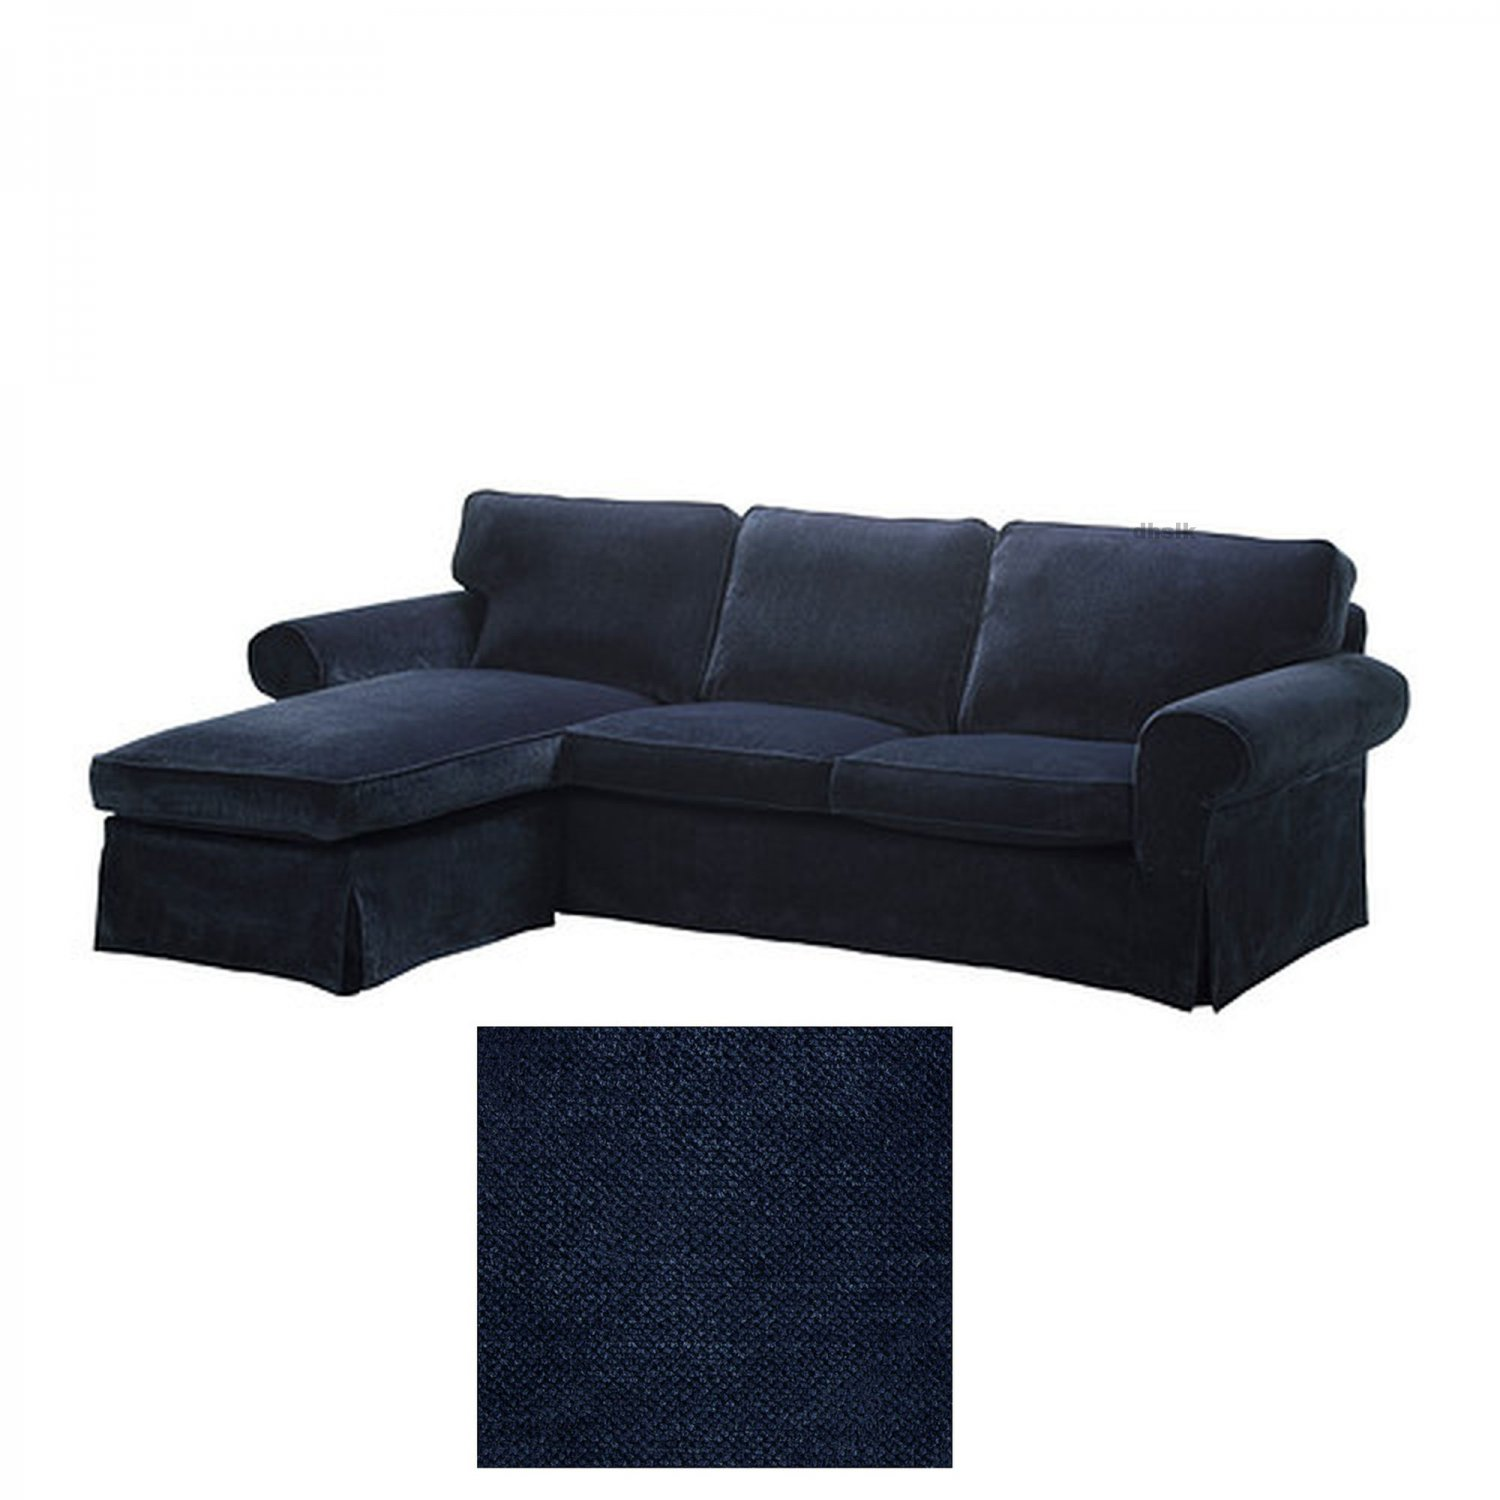 IKEA EKTORP 2 Seat Loveseat sofa with Chaise COVER  : 5306559ff190854622b from rock-paper-scissors.ecrater.com size 1500 x 1500 jpeg 136kB